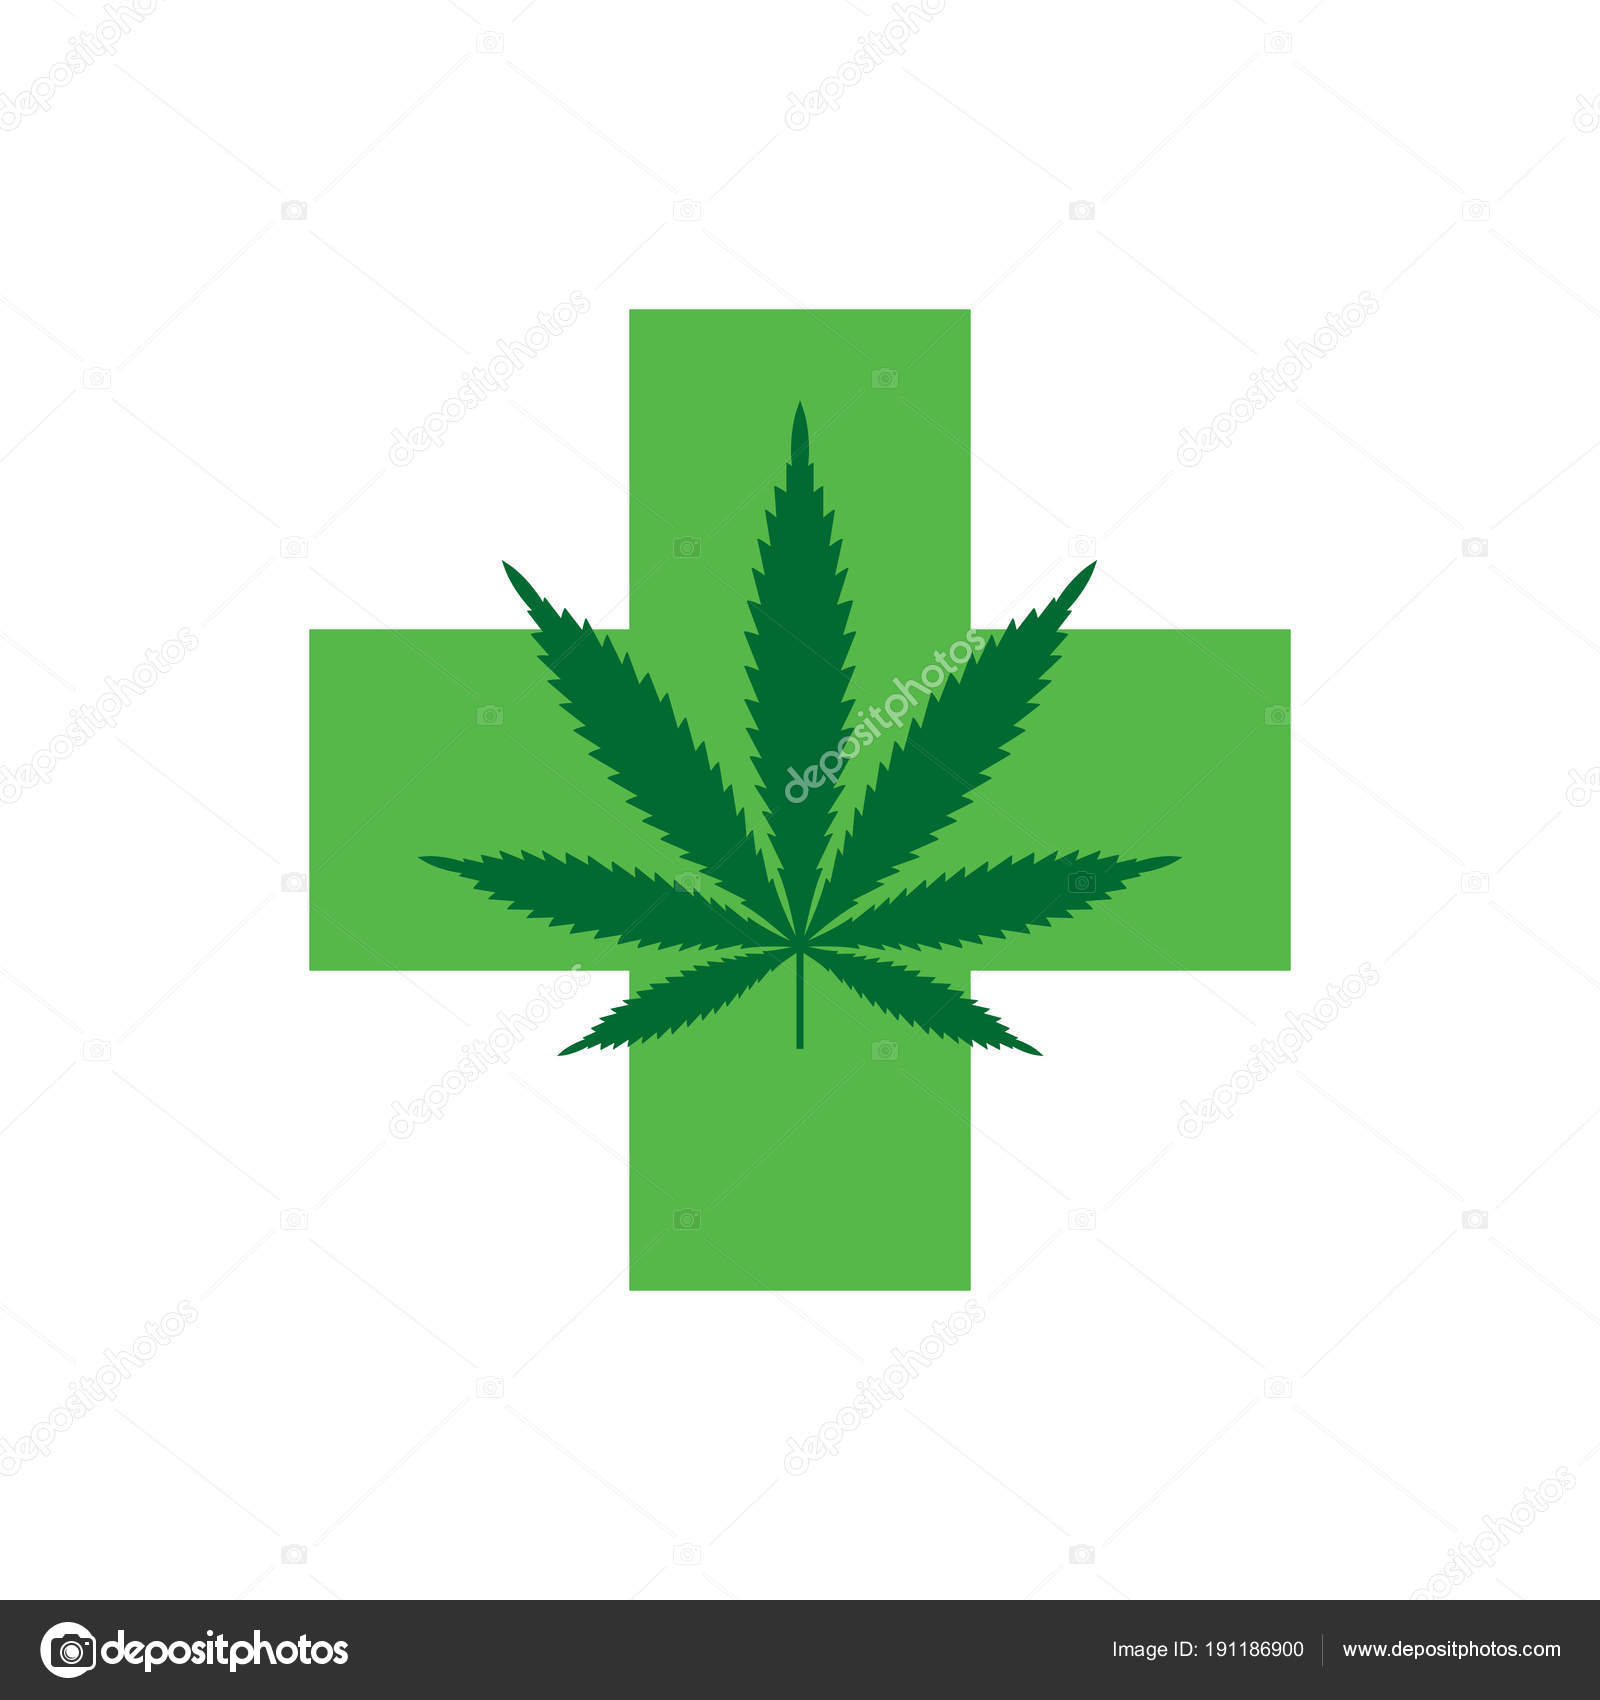 marijuana leaf with green cross medical cannabis icon logo template stock vector c olga newname yandex ru 191186900 https depositphotos com 191186900 stock illustration marijuana leaf with green cross html